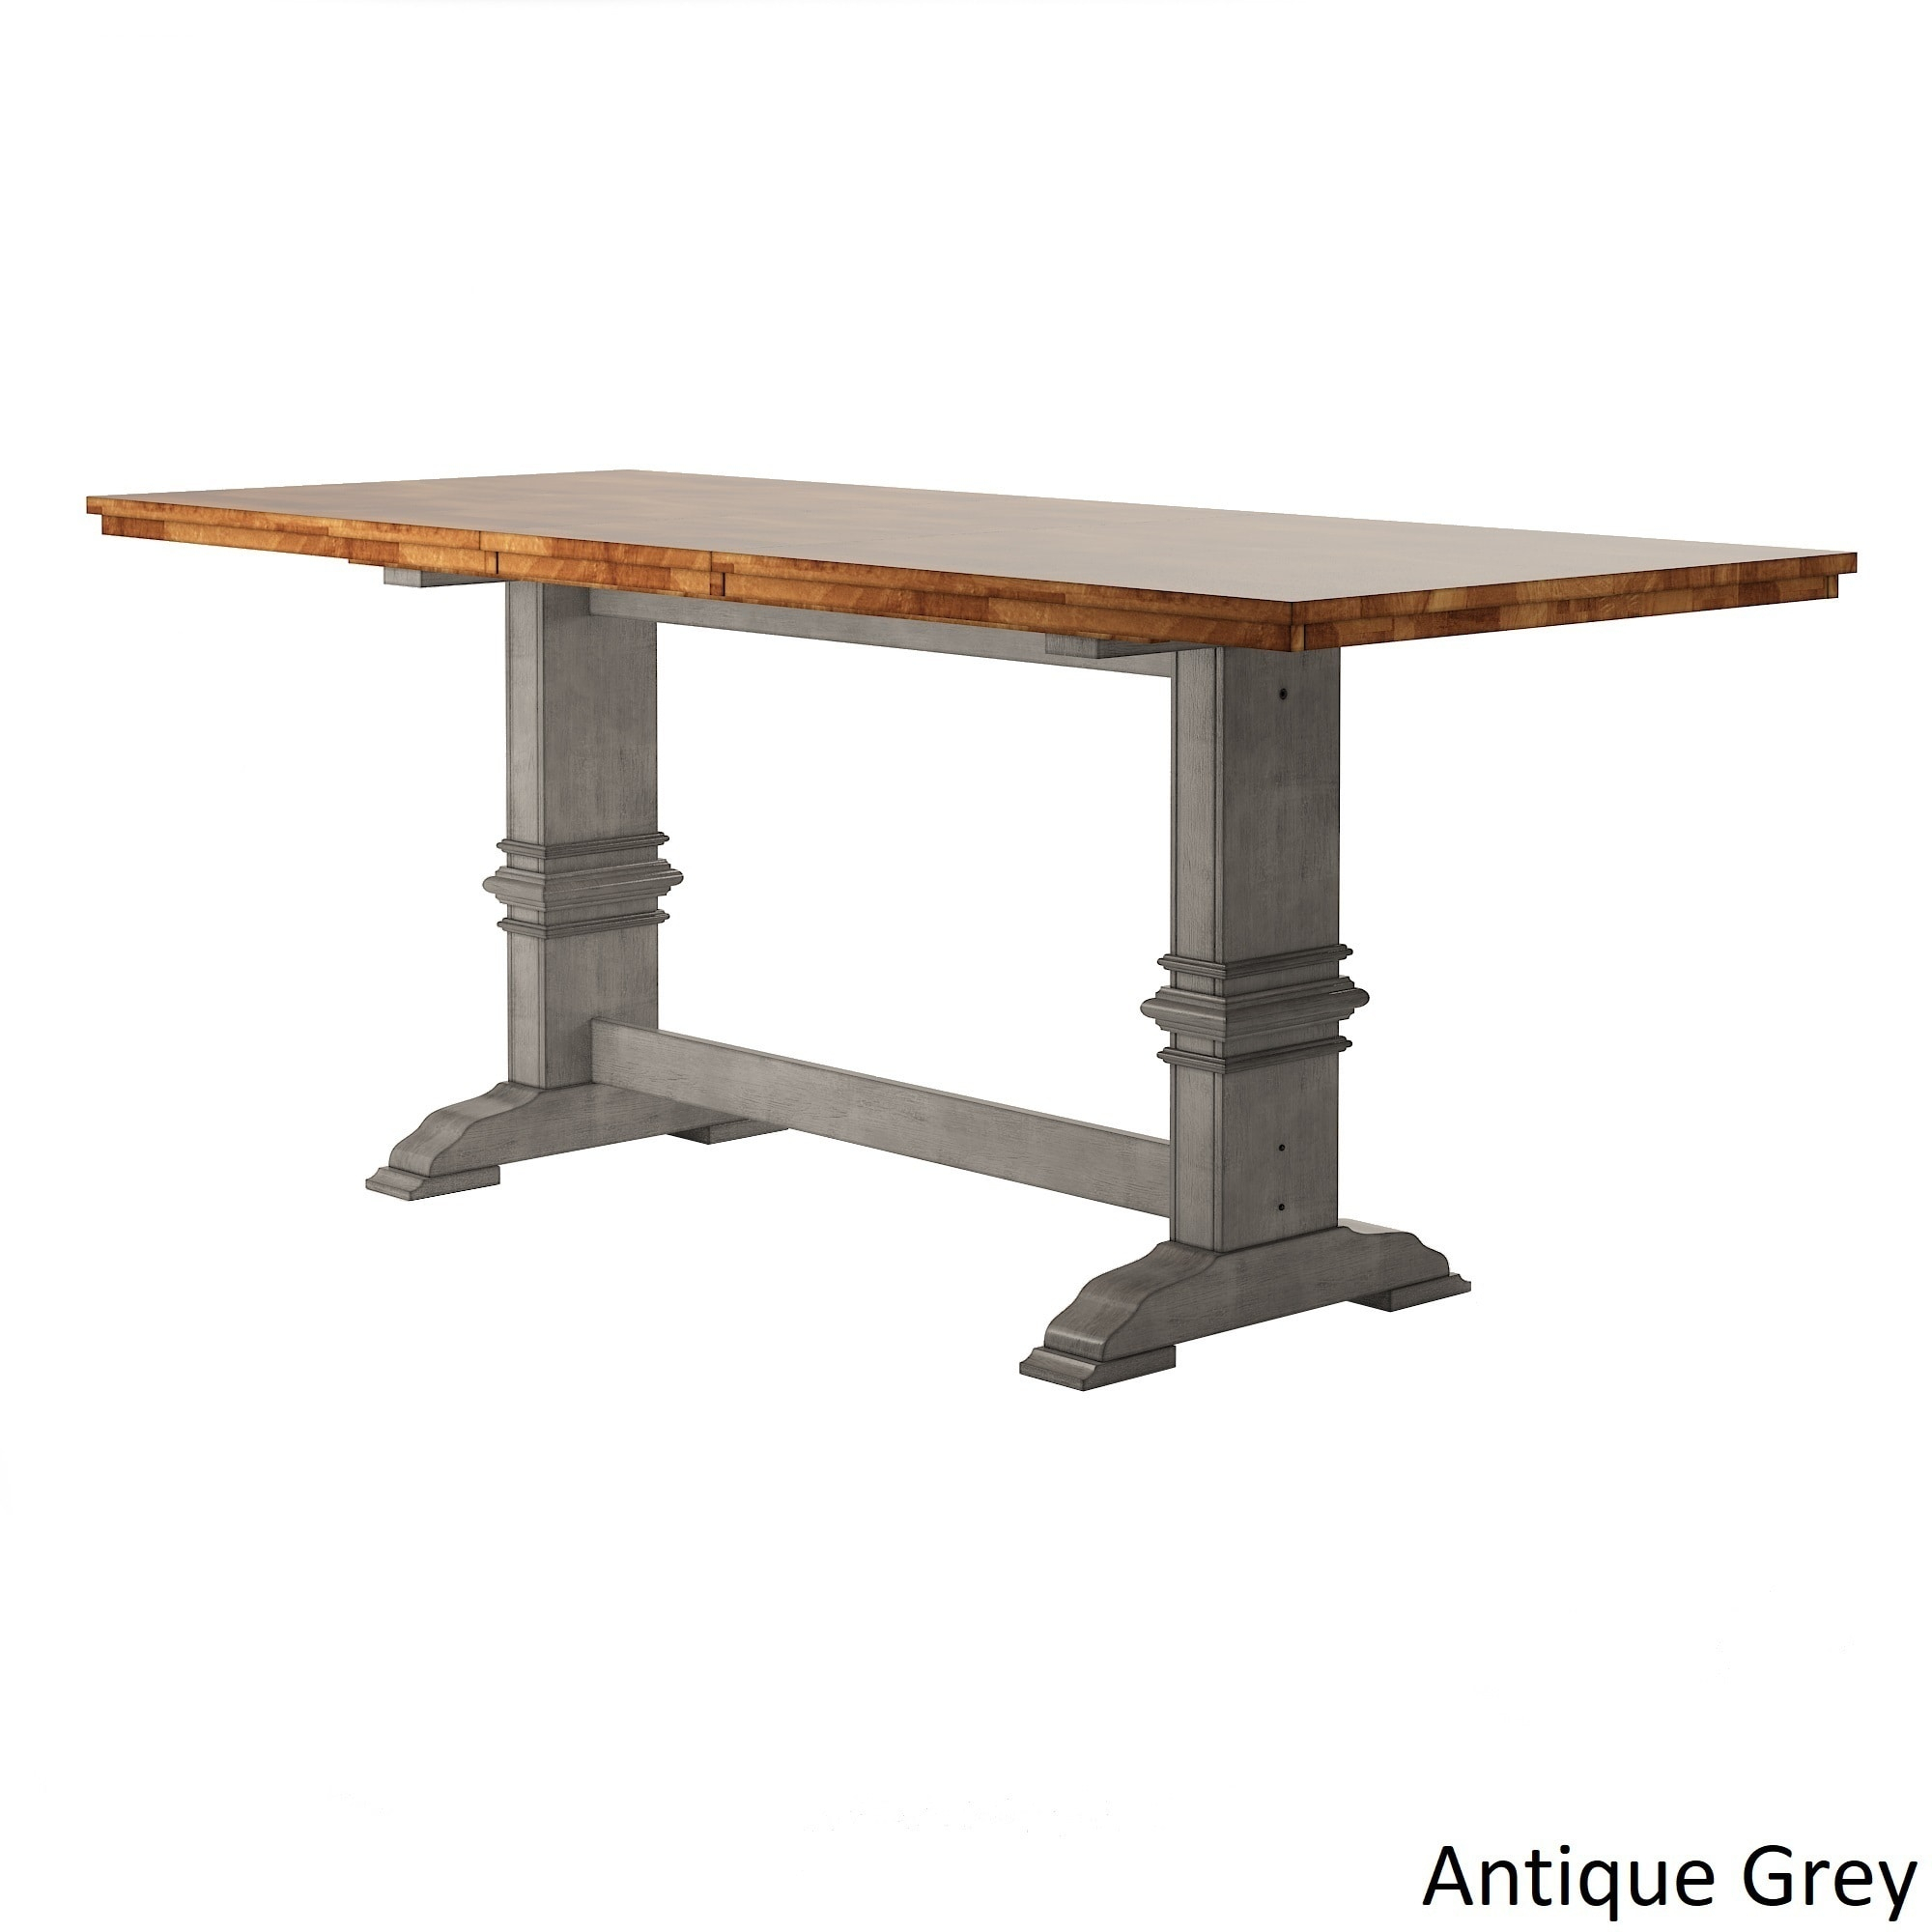 Eleanor Solid Wood Counter Height Trestle Base Dining Table Intended For Current Lucy Bar Height Dining Tables (Image 9 of 25)